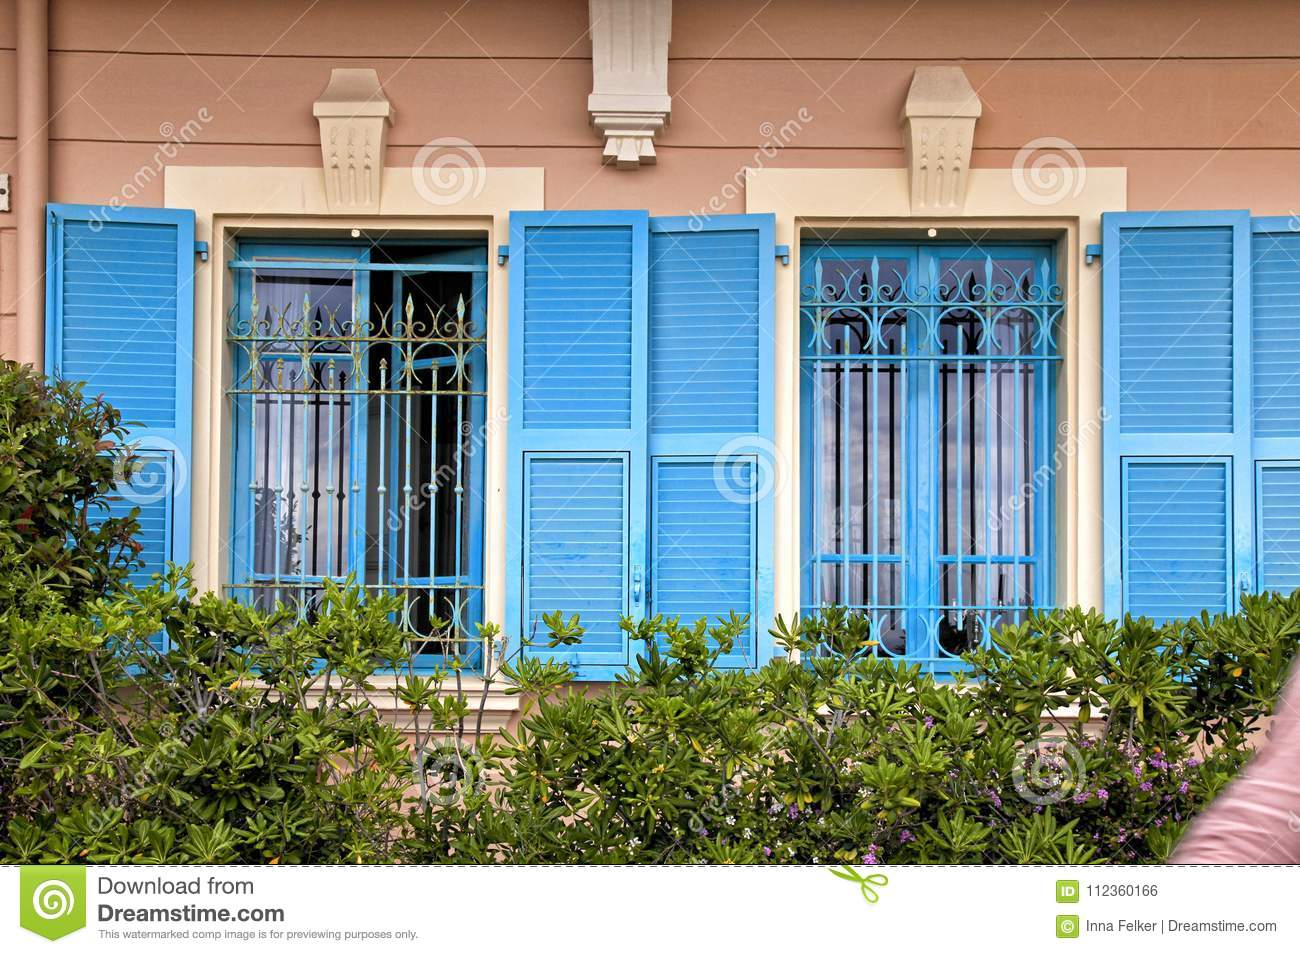 Vintage windows with blue shutters in old house, Provence, Franc